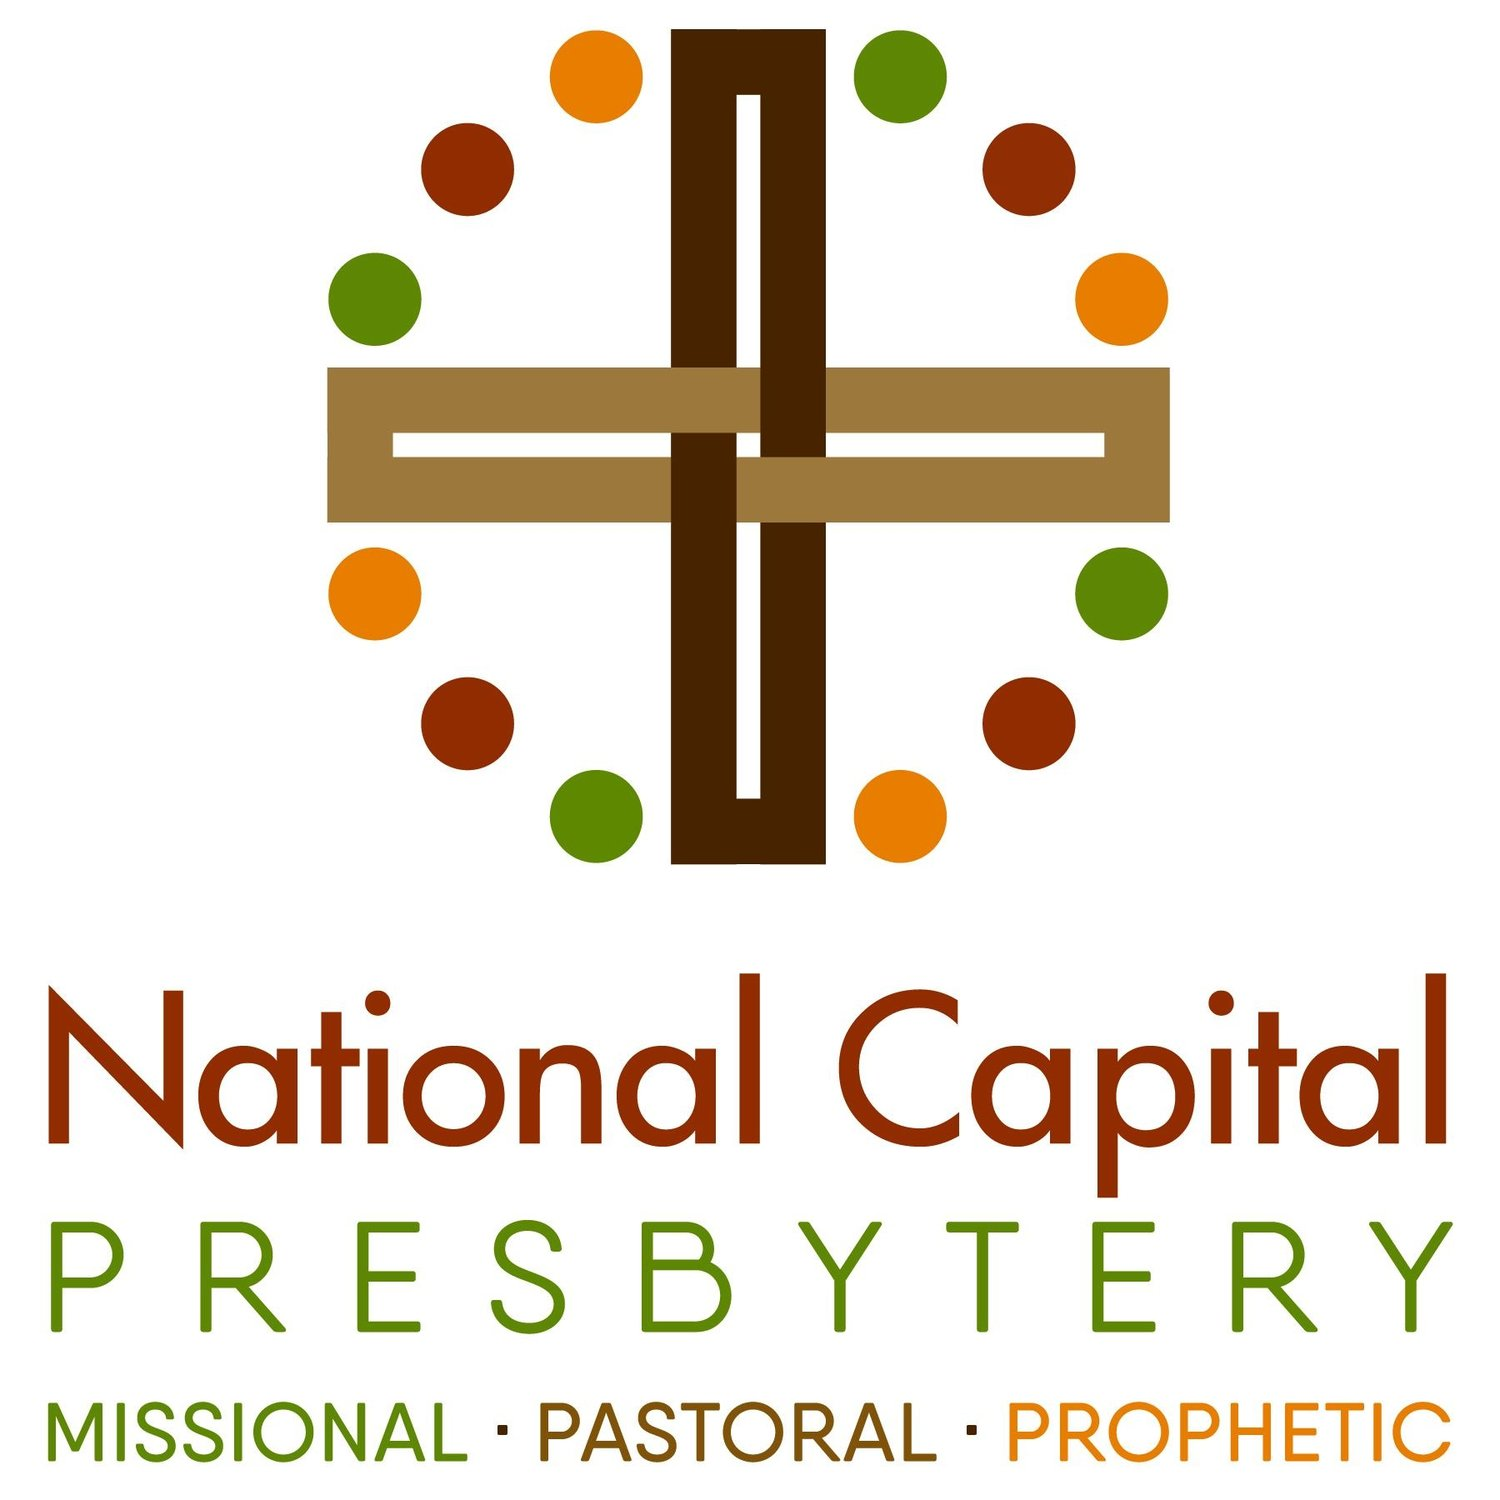 Mission in the National Capital Presbytery